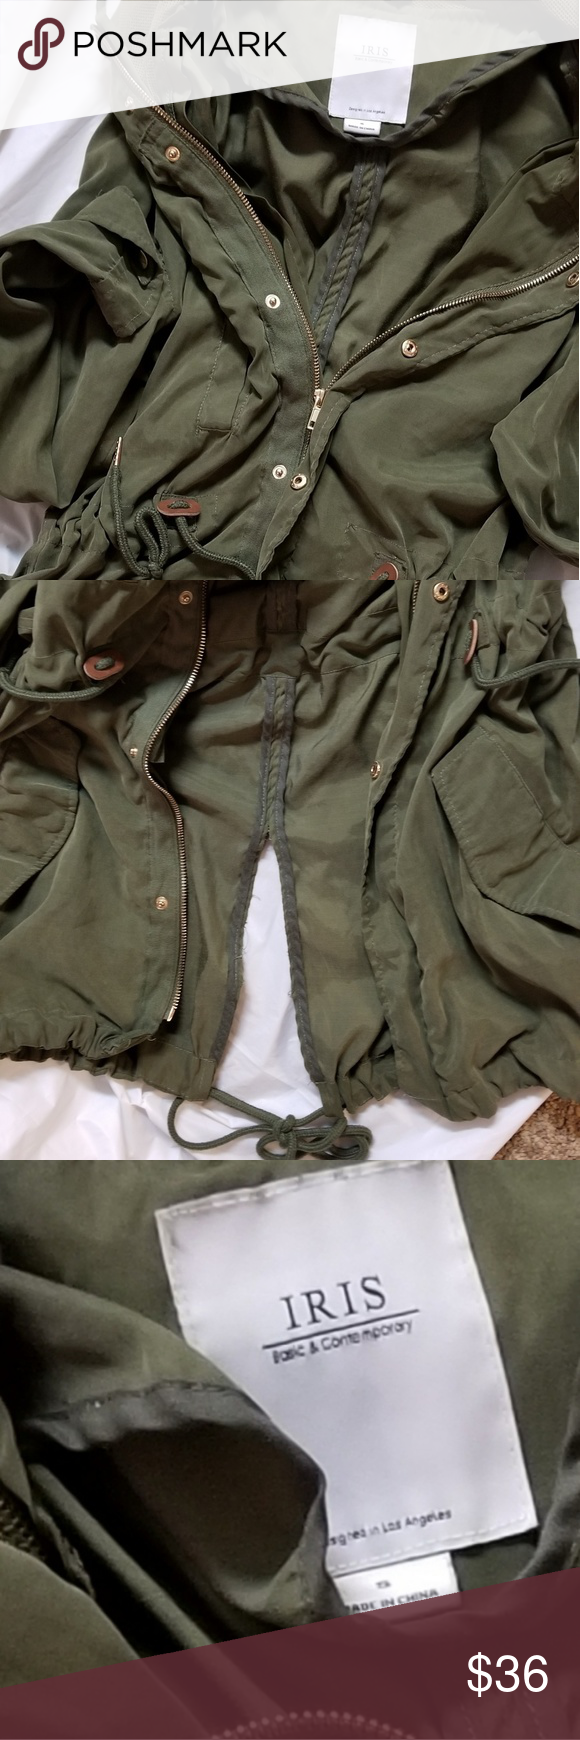 d946c6f7a624 iris utility coat good condition Iris    pretty long olive green utility  jacket.